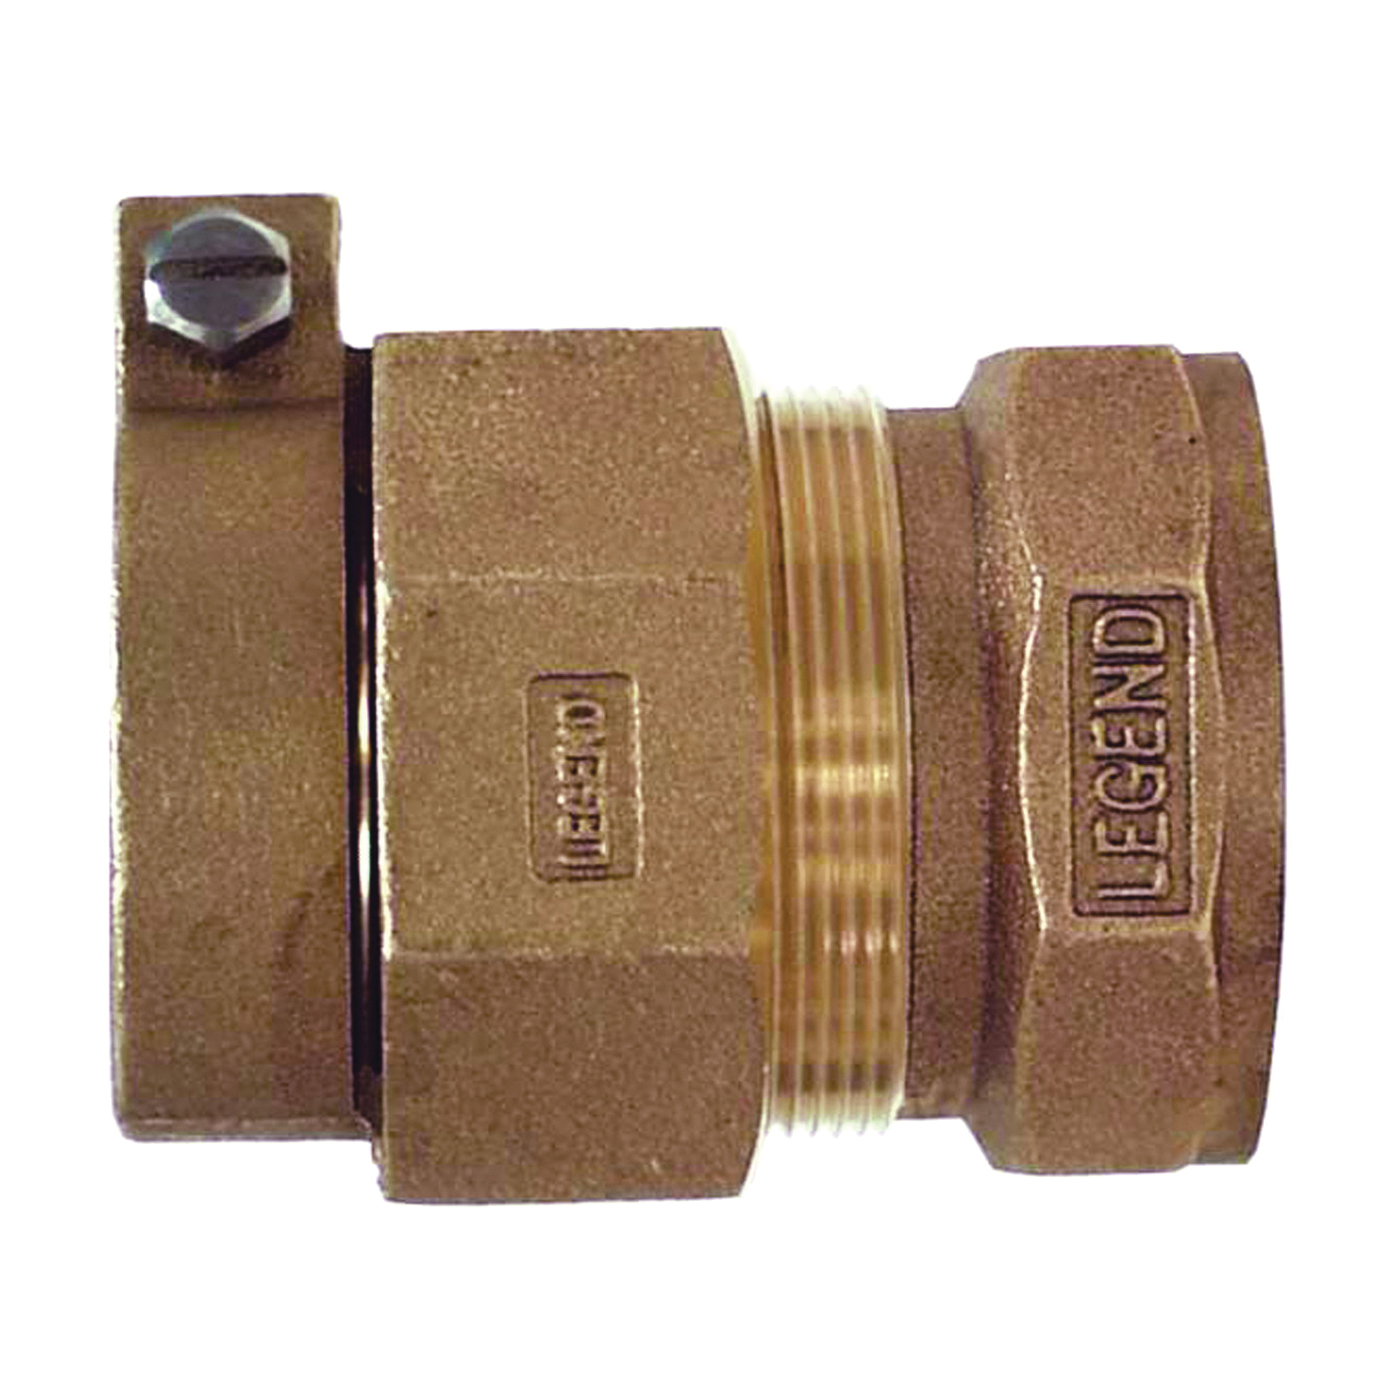 Picture of Legend T-4305NL Series 313-280NL Connector, 1 in Pack-Joint, 3/4 in FNPT